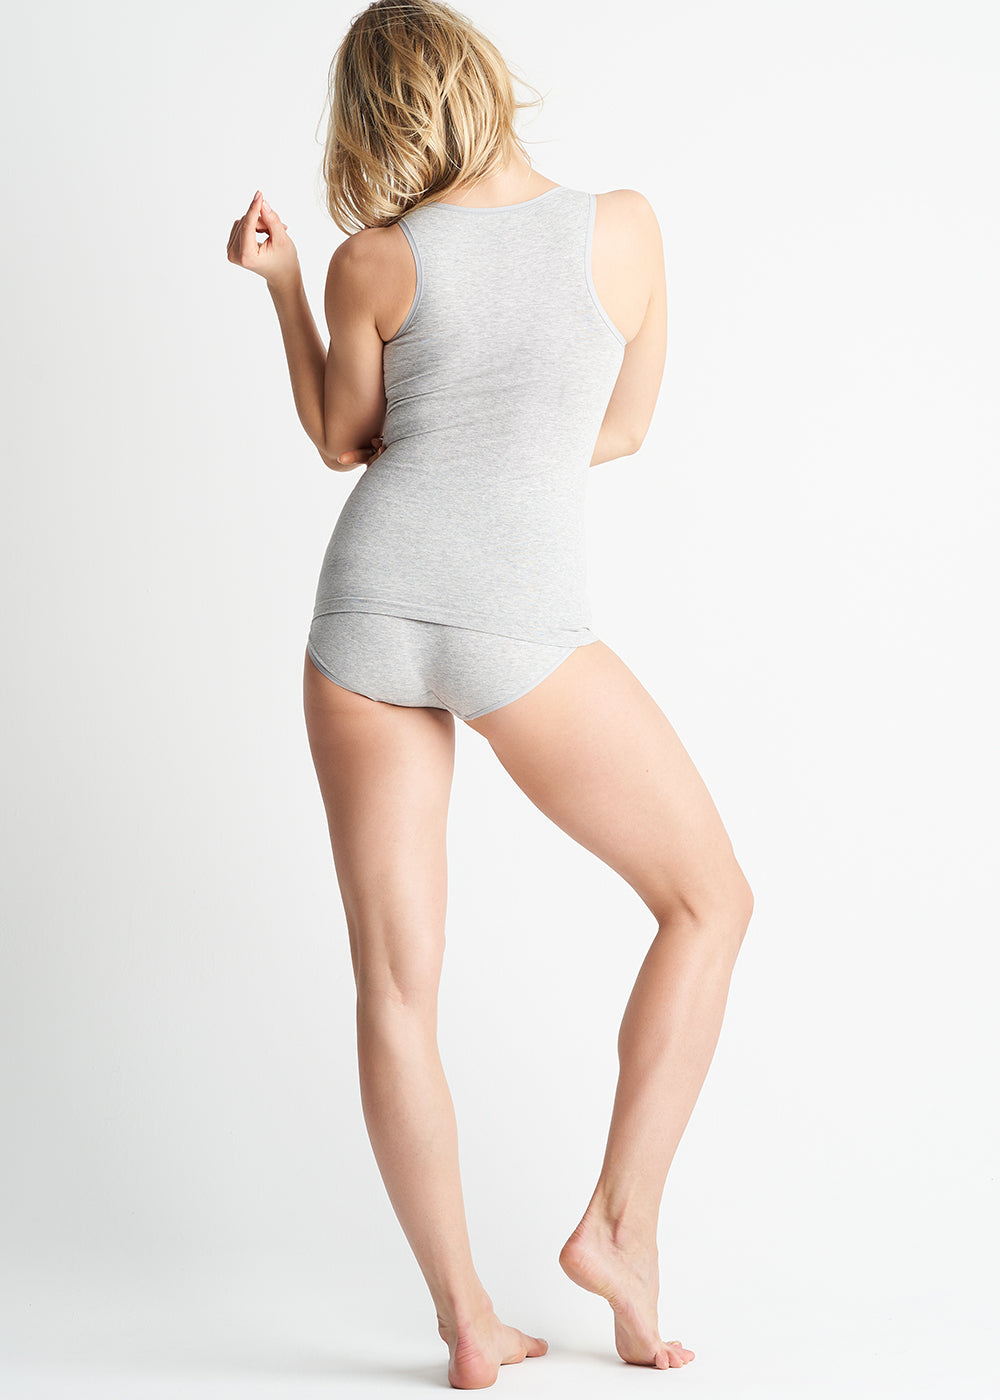 Heather Grey | 5' 10"